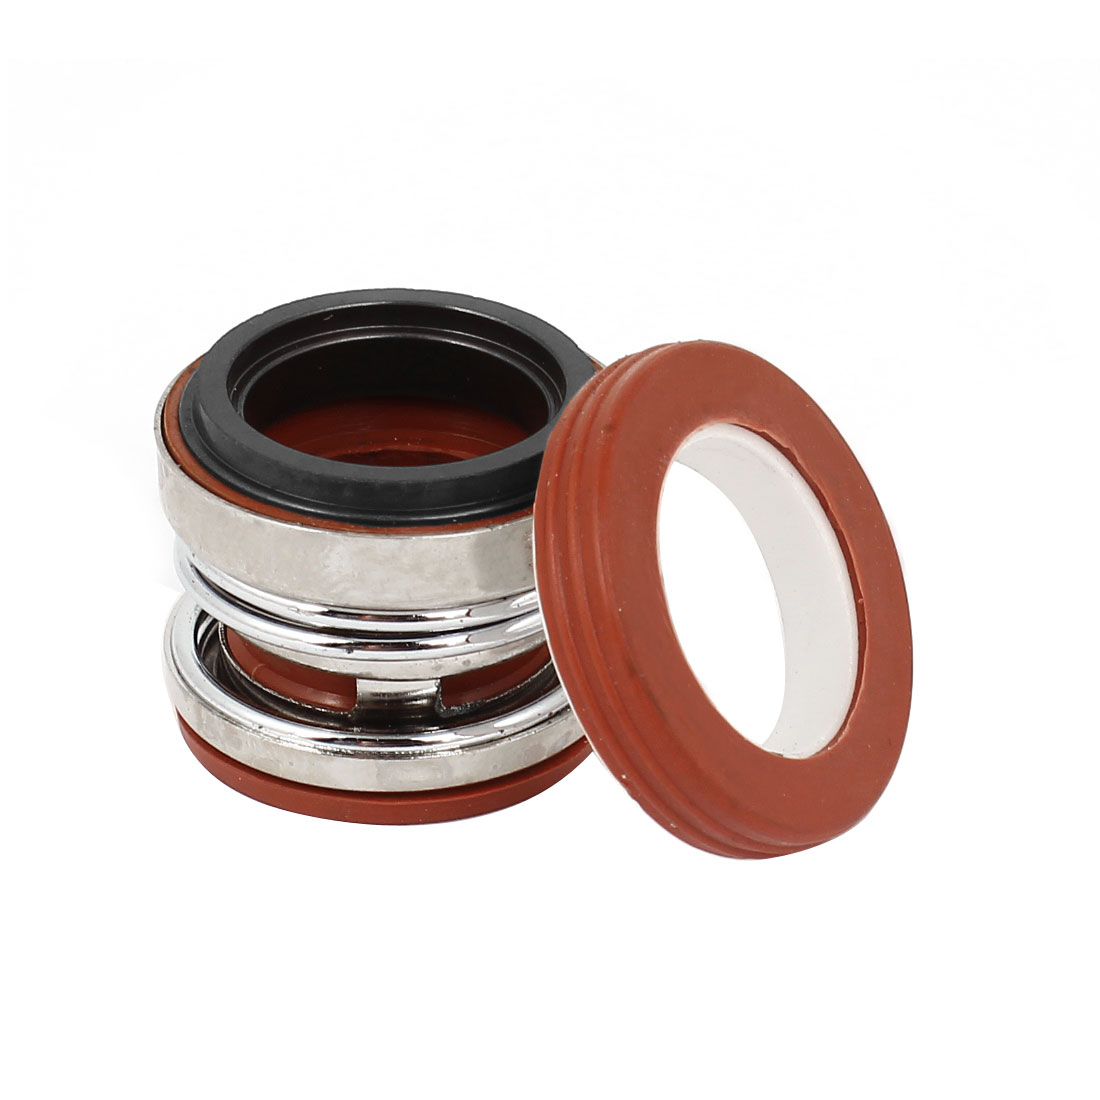 16mm Dia Rubber Bellows Sealing Shaft Mechanical Seal for Water Pump